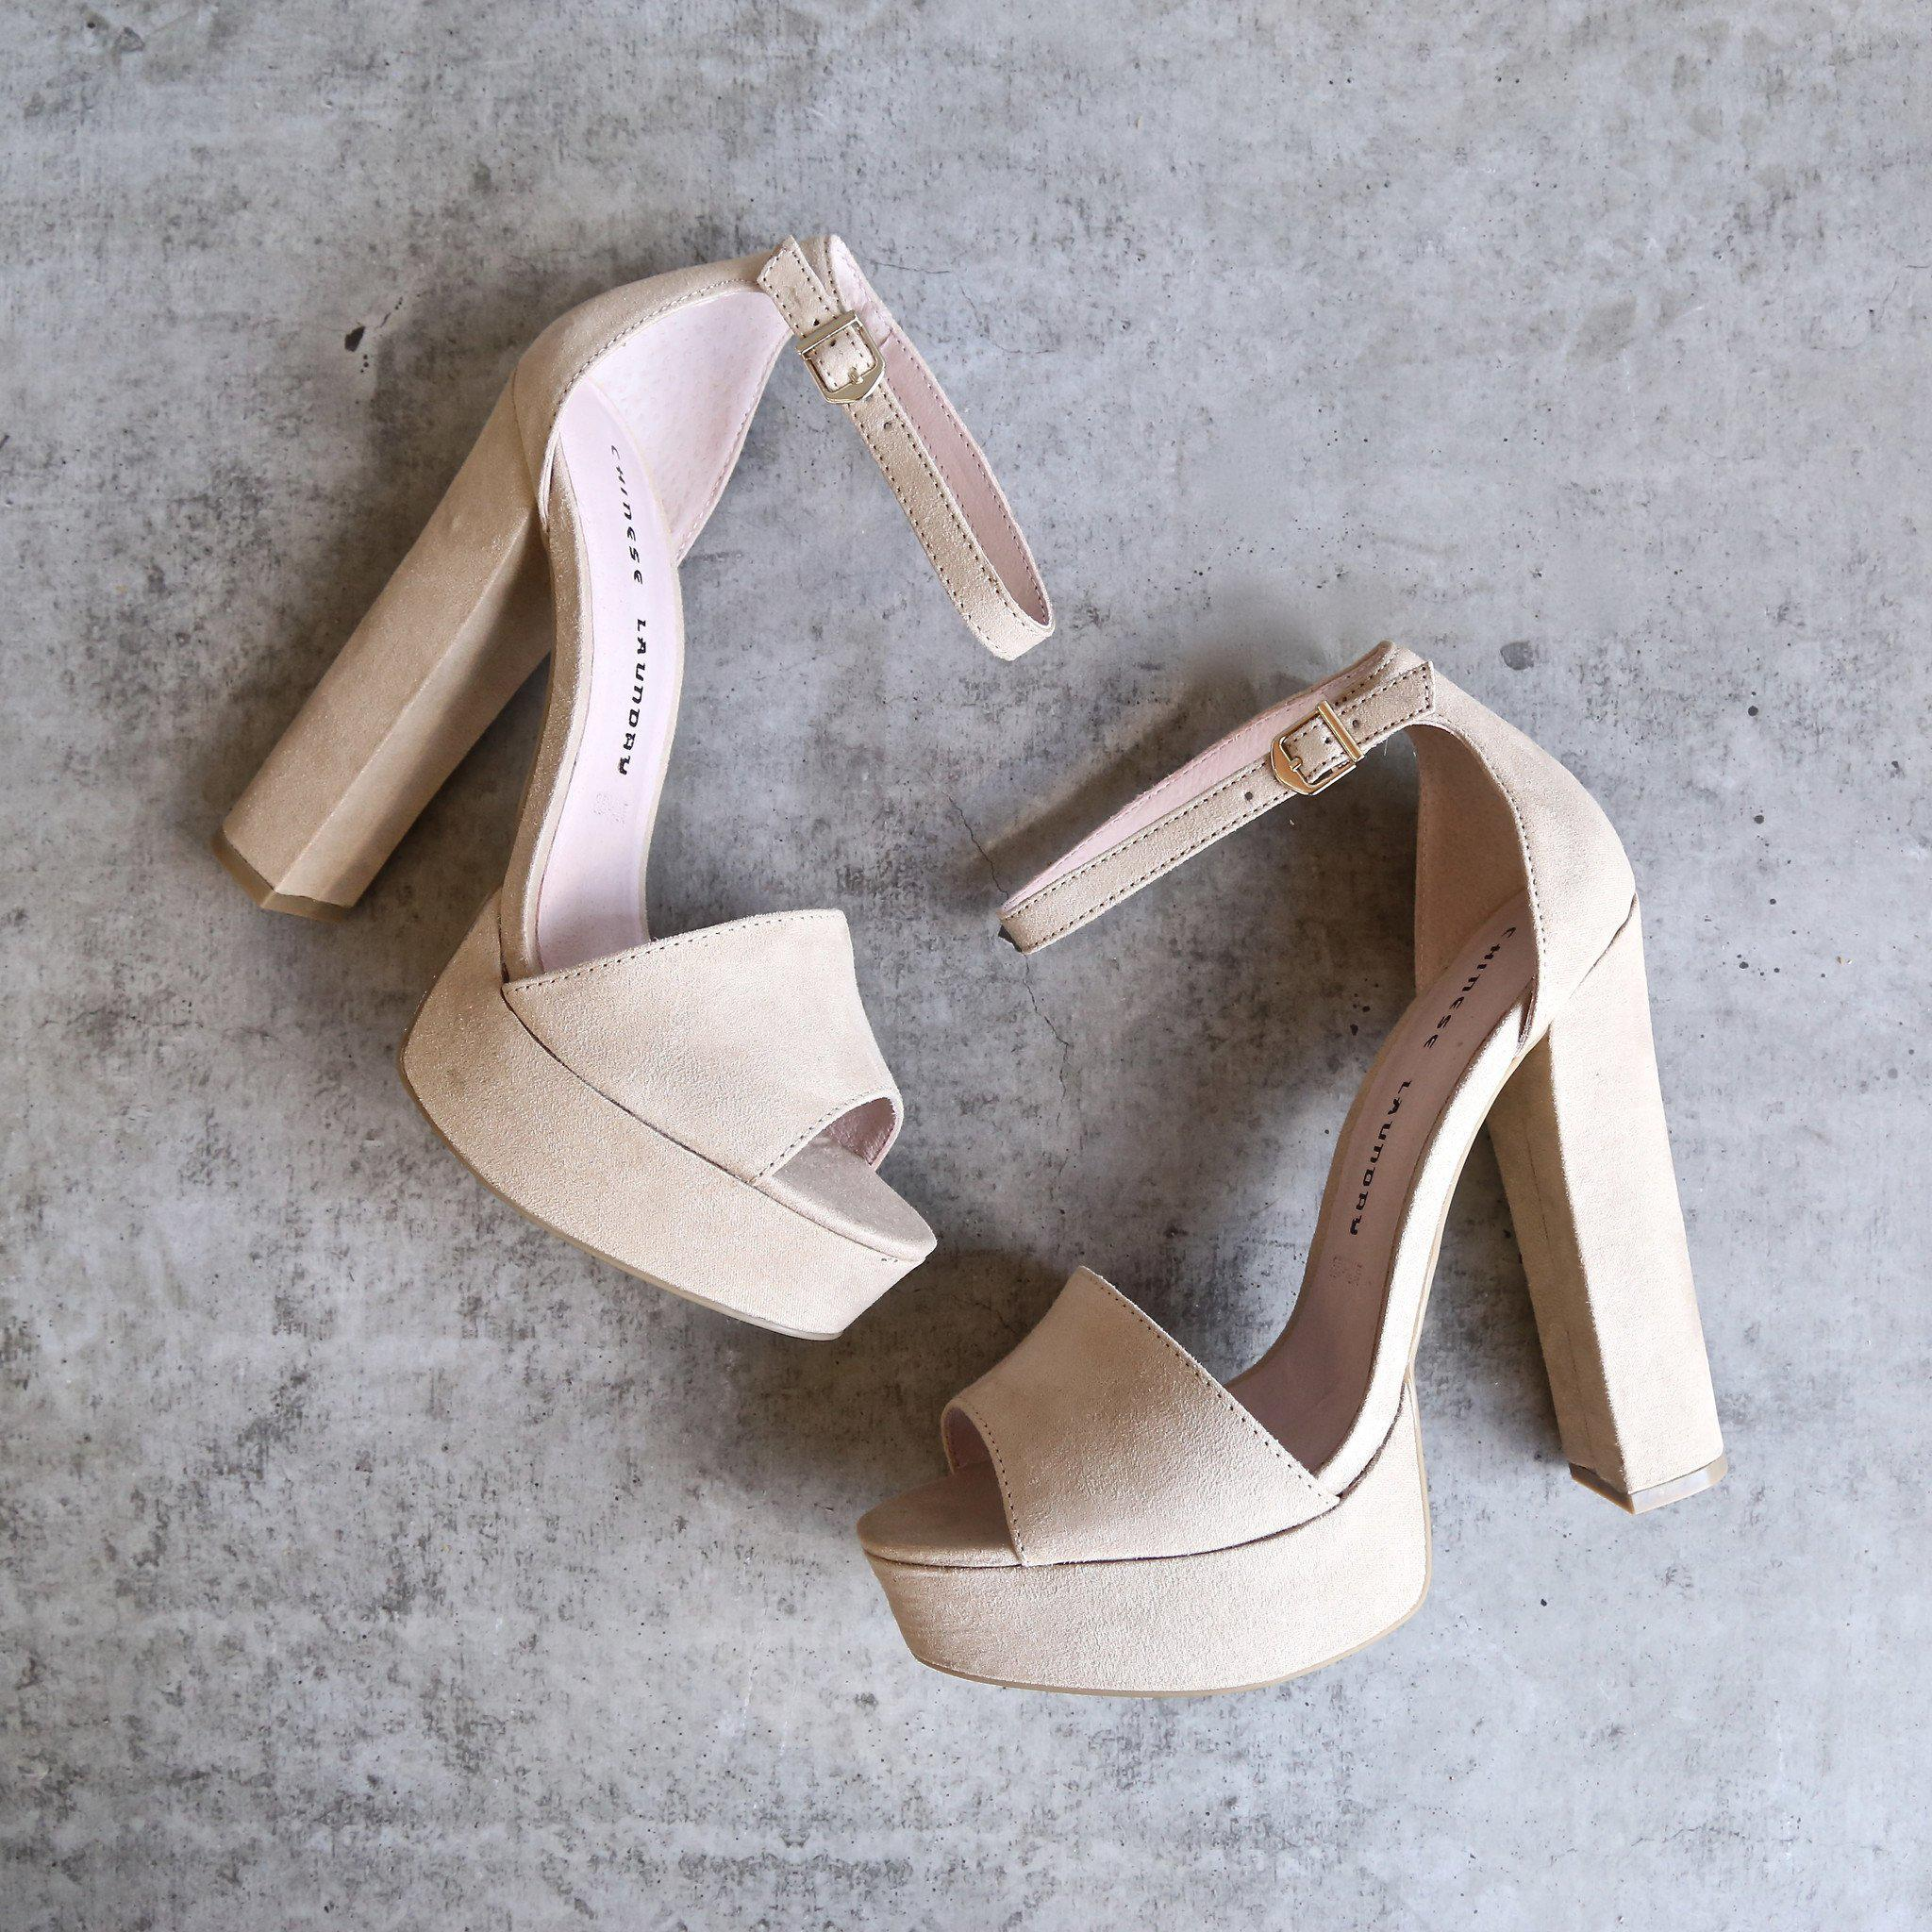 4fddee0190 chinese laundry - avenue platform sandal from shophearts